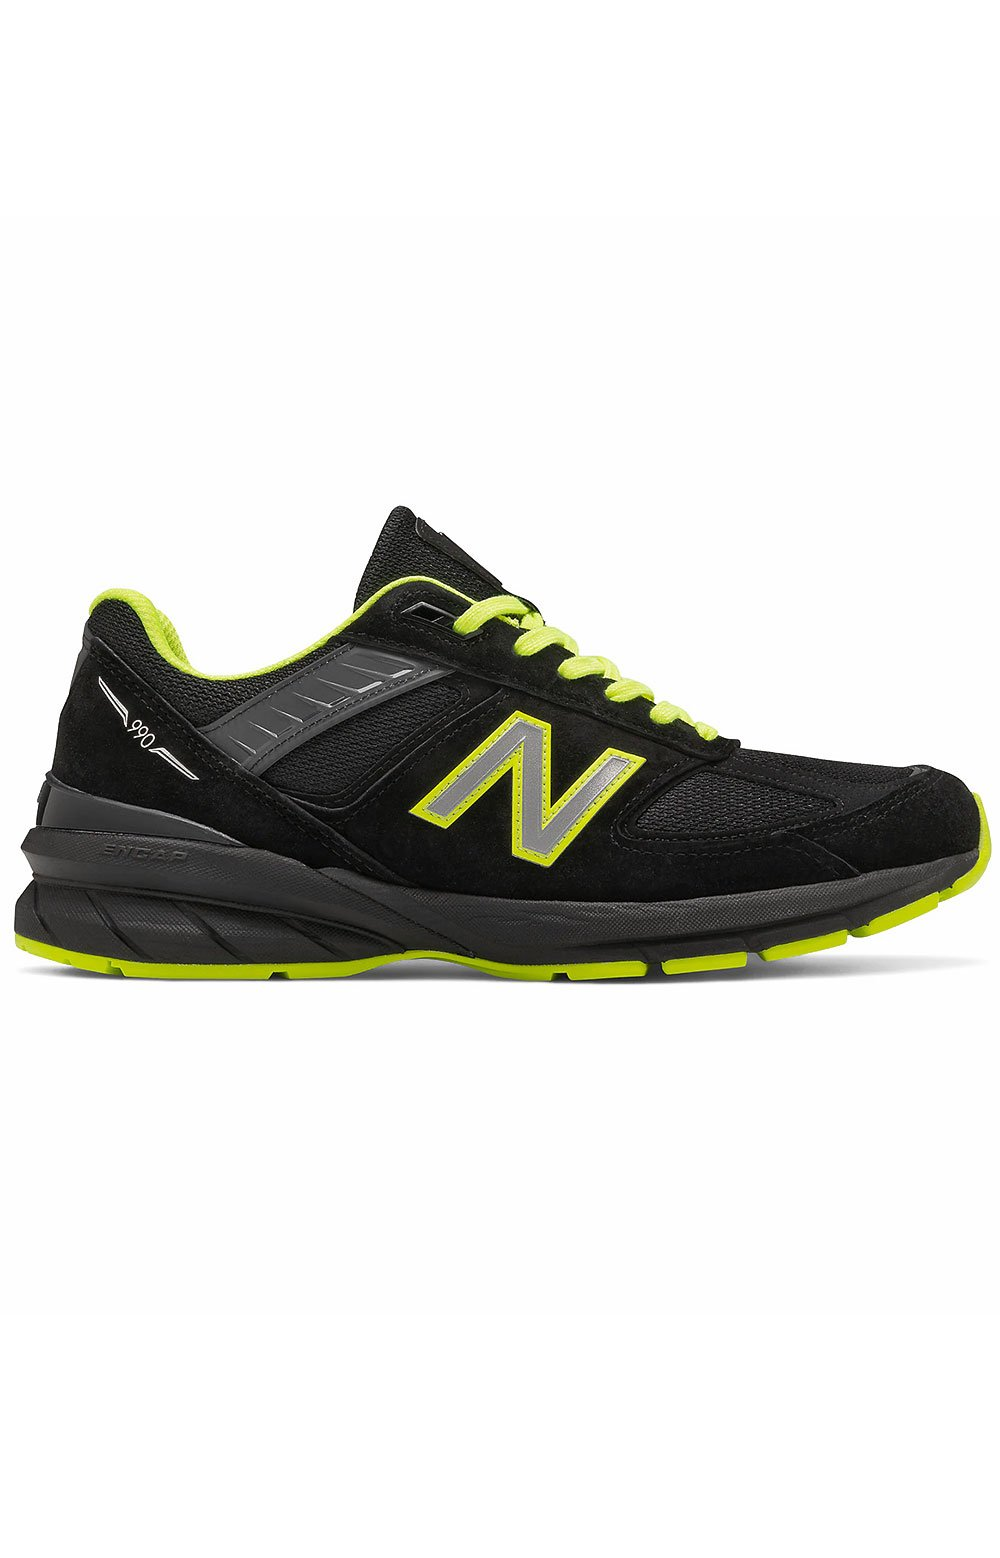 (M990BY5) Made in USA 990v5 Shoes - Black/Hi Lite